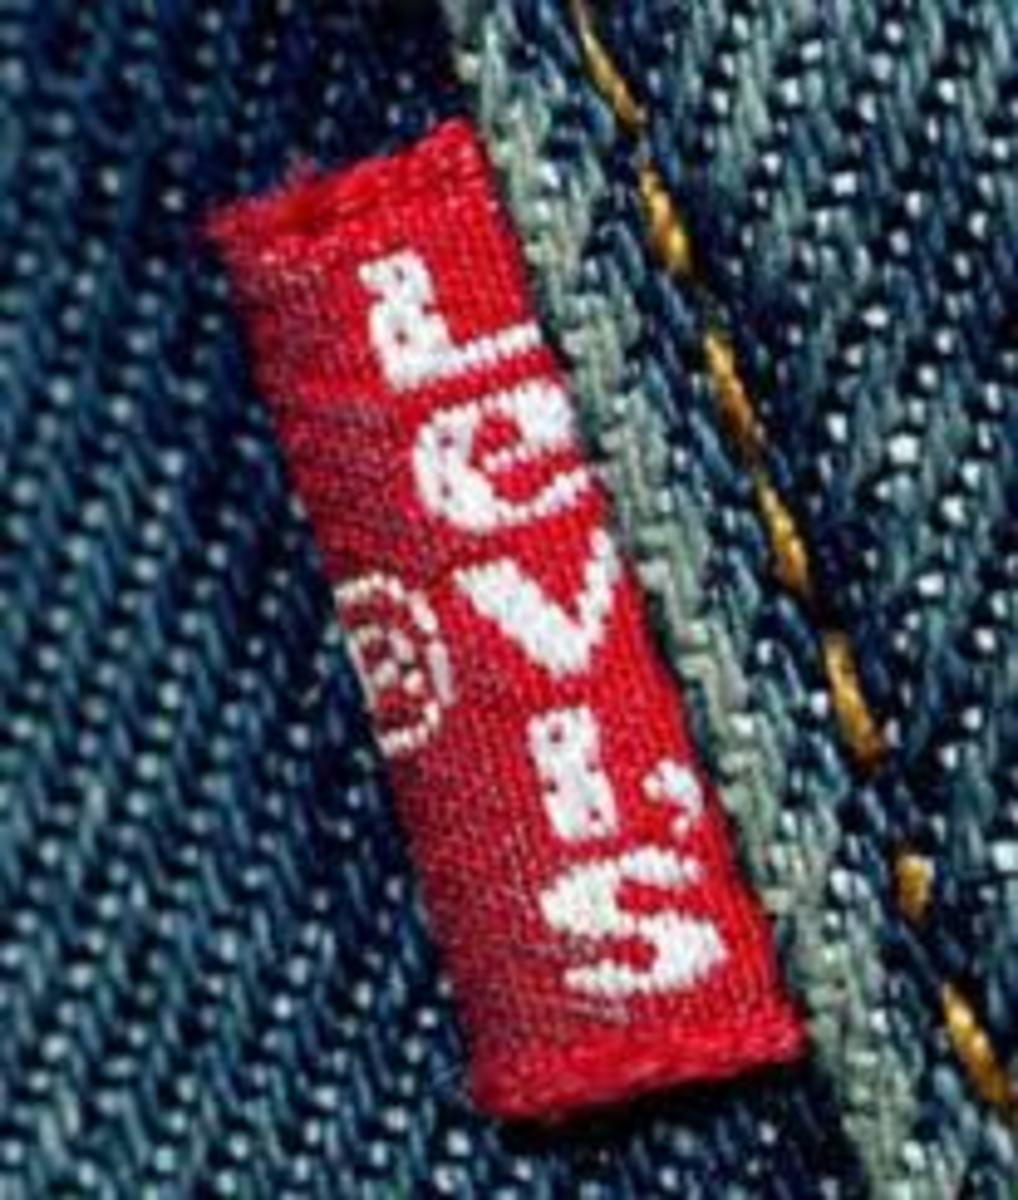 The red tag was added as a Levi identifier.